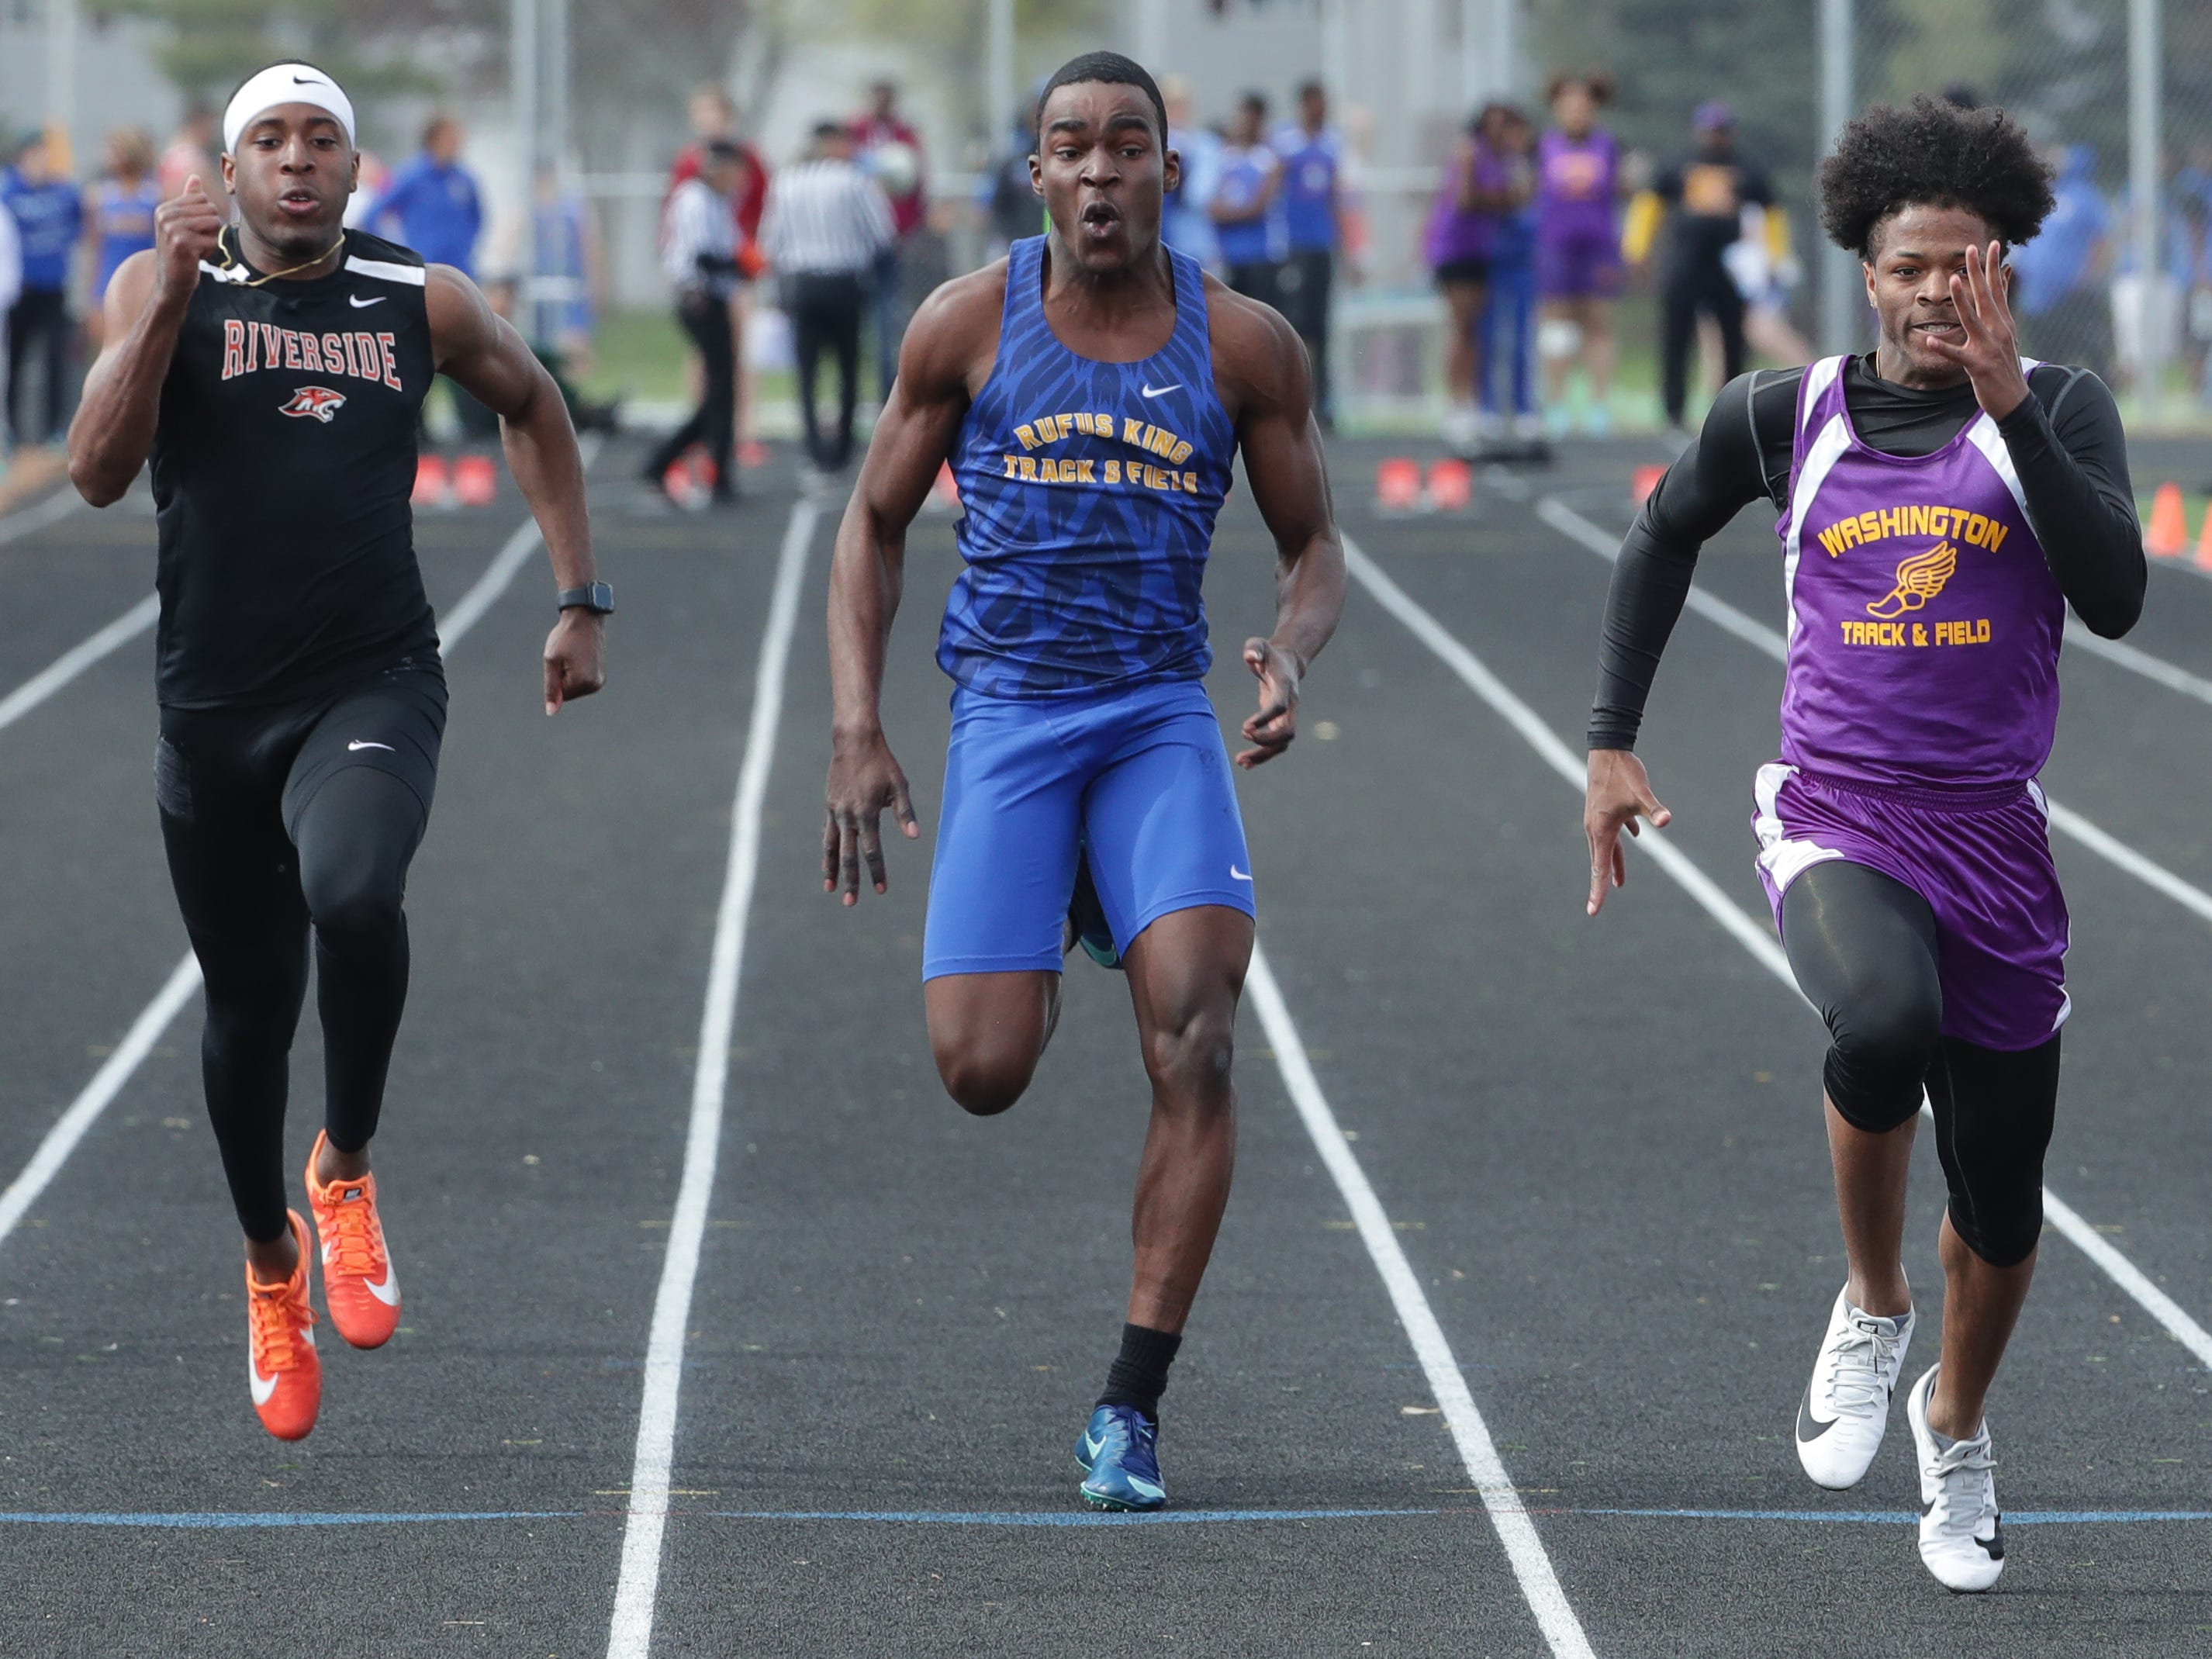 Washington's Elijah Johnson (front) wins the boys 100 meters with a time of 10.97 seconds at the City Conference track meet.